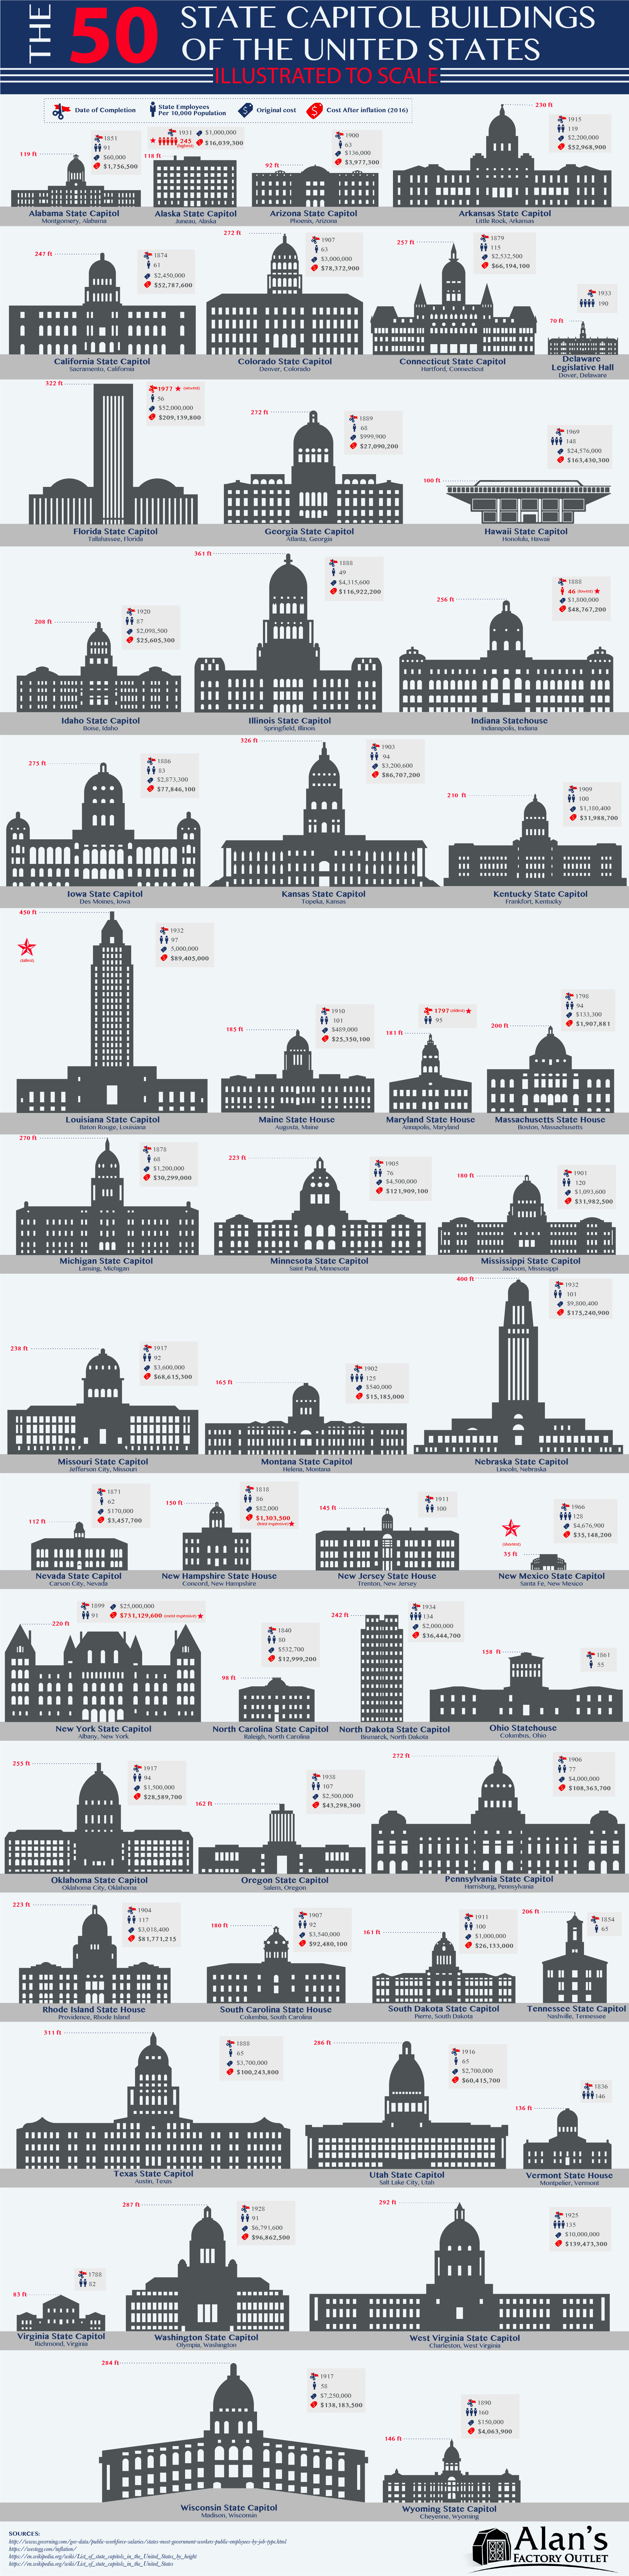 The 50 State Capitol Buildings of the United States Illustrated to Scale - AlansFactoryOutlet.com - Infographic